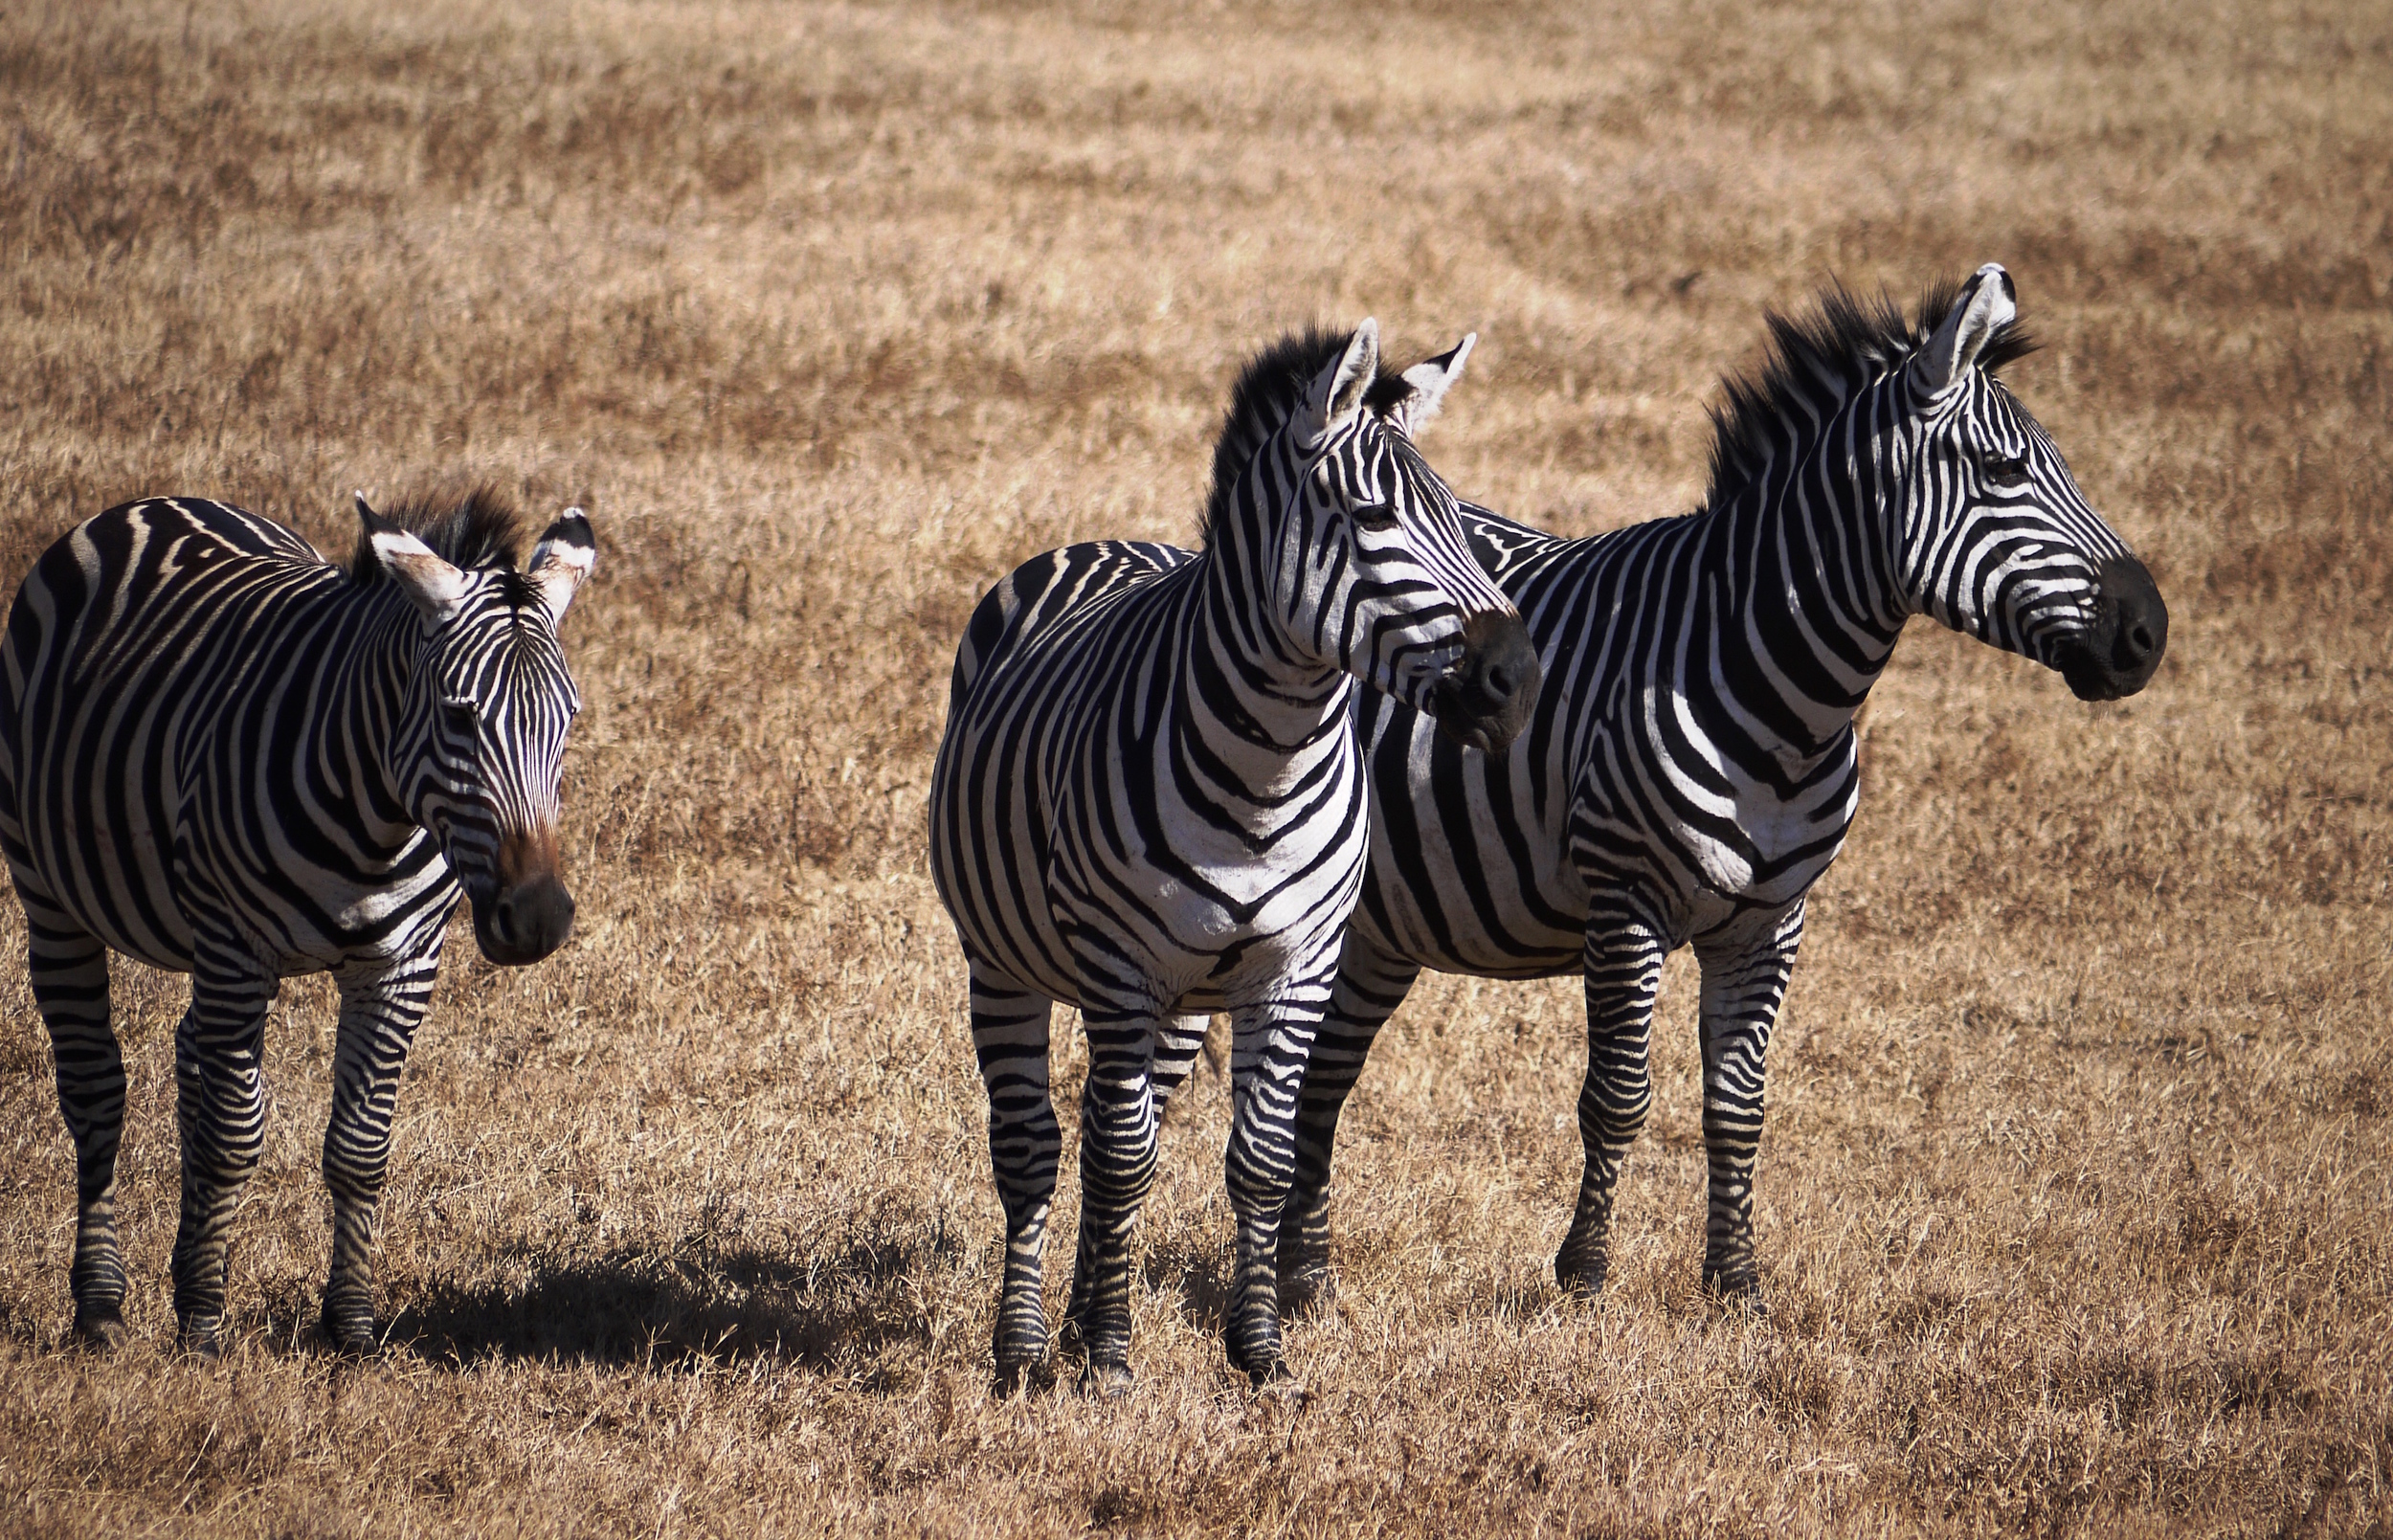 Zebras in the Serengeti -- where a major road project has been proposed  (photo by William Laurance)